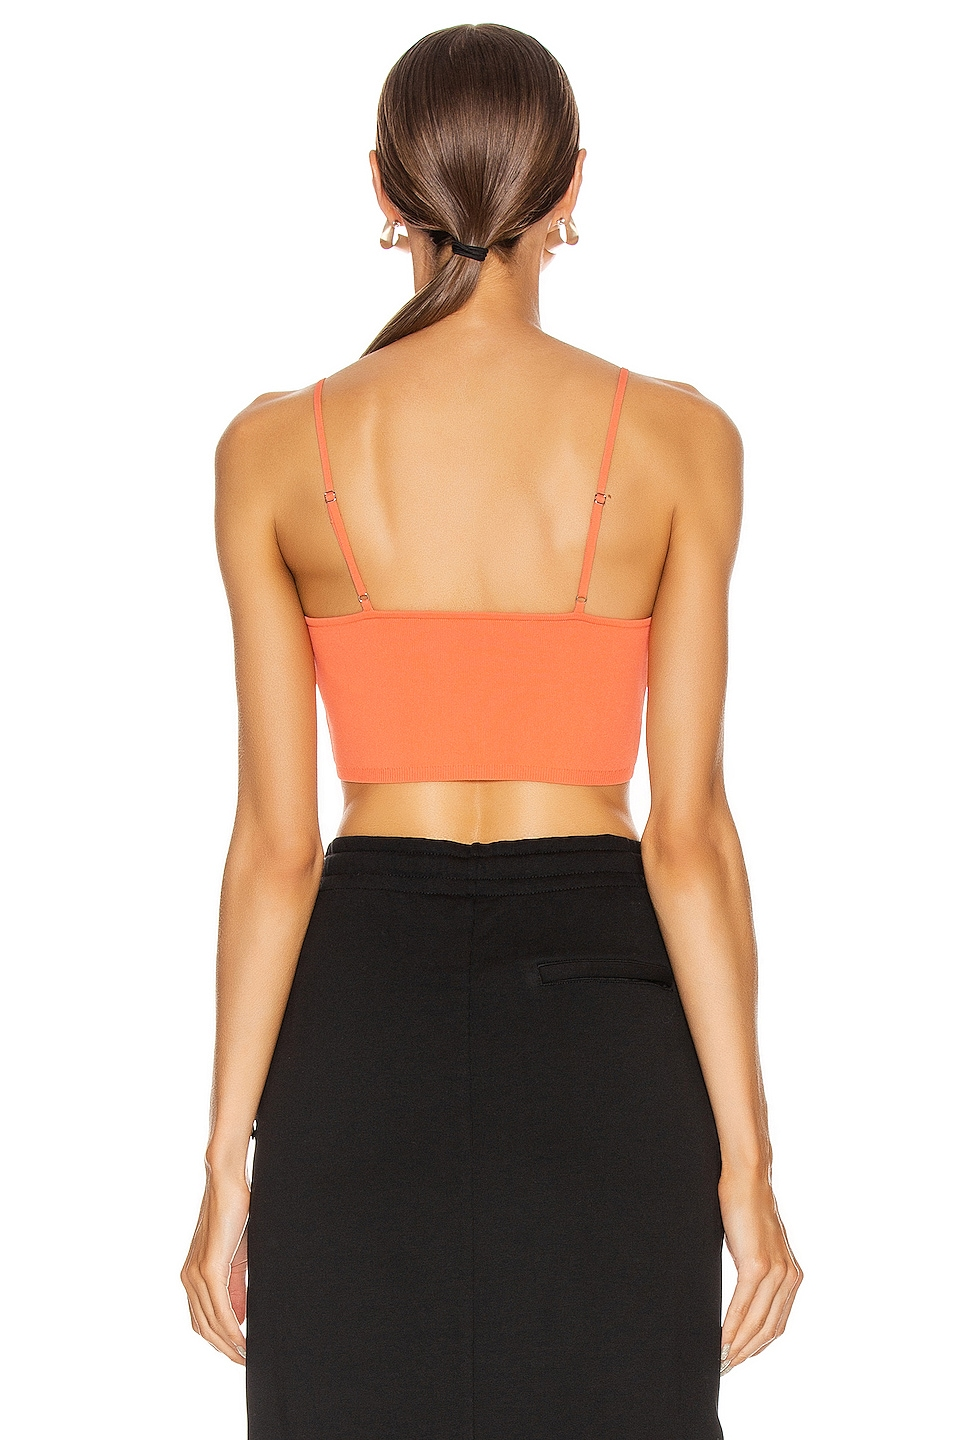 Image 4 of T by Alexander Wang Bralette Top in Faded Pink